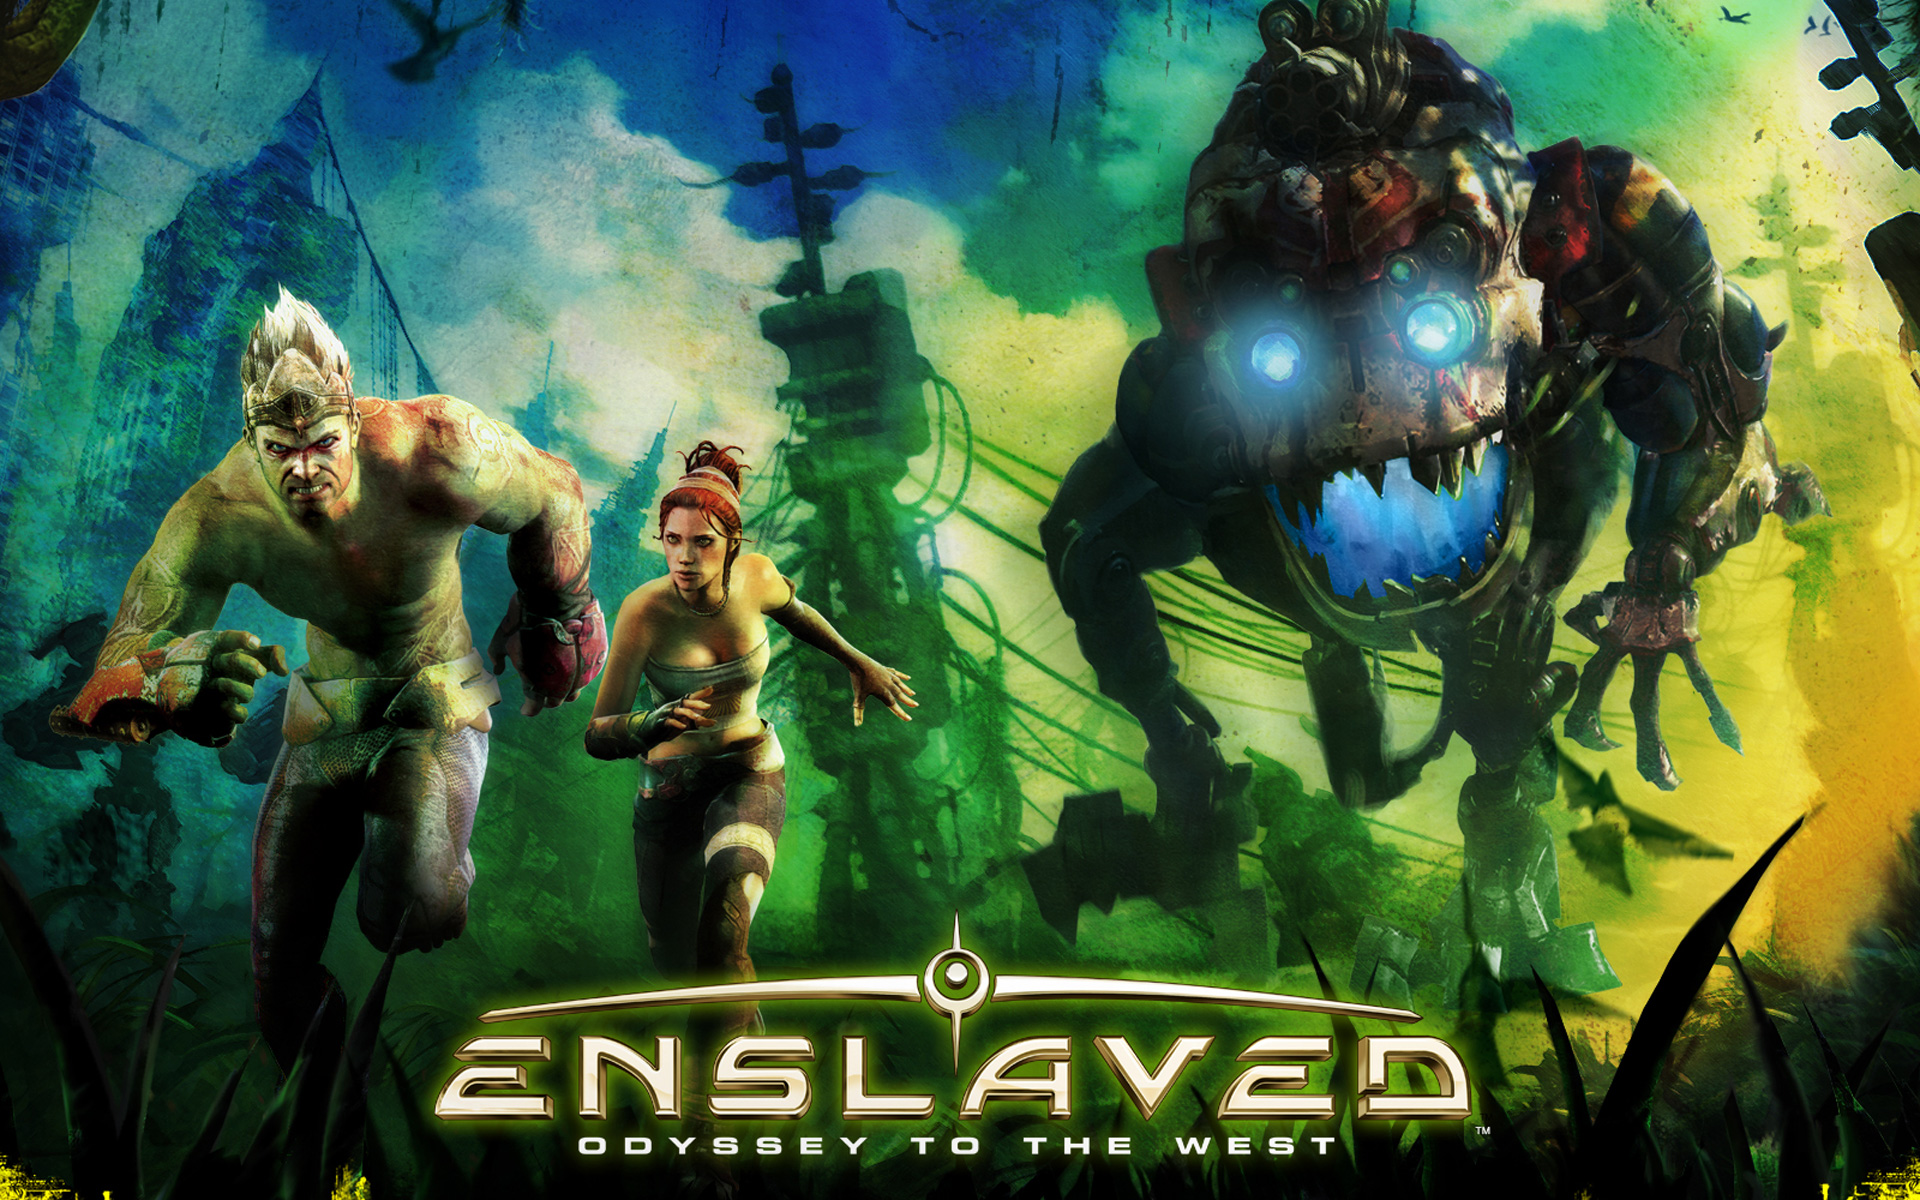 Caption:  A promotional image for the game Enslaved: Odyssey to the West, starring Andy Serkis and Lindsey Shaw in motion capture performances.  Nitin Sawhney composed the original score.